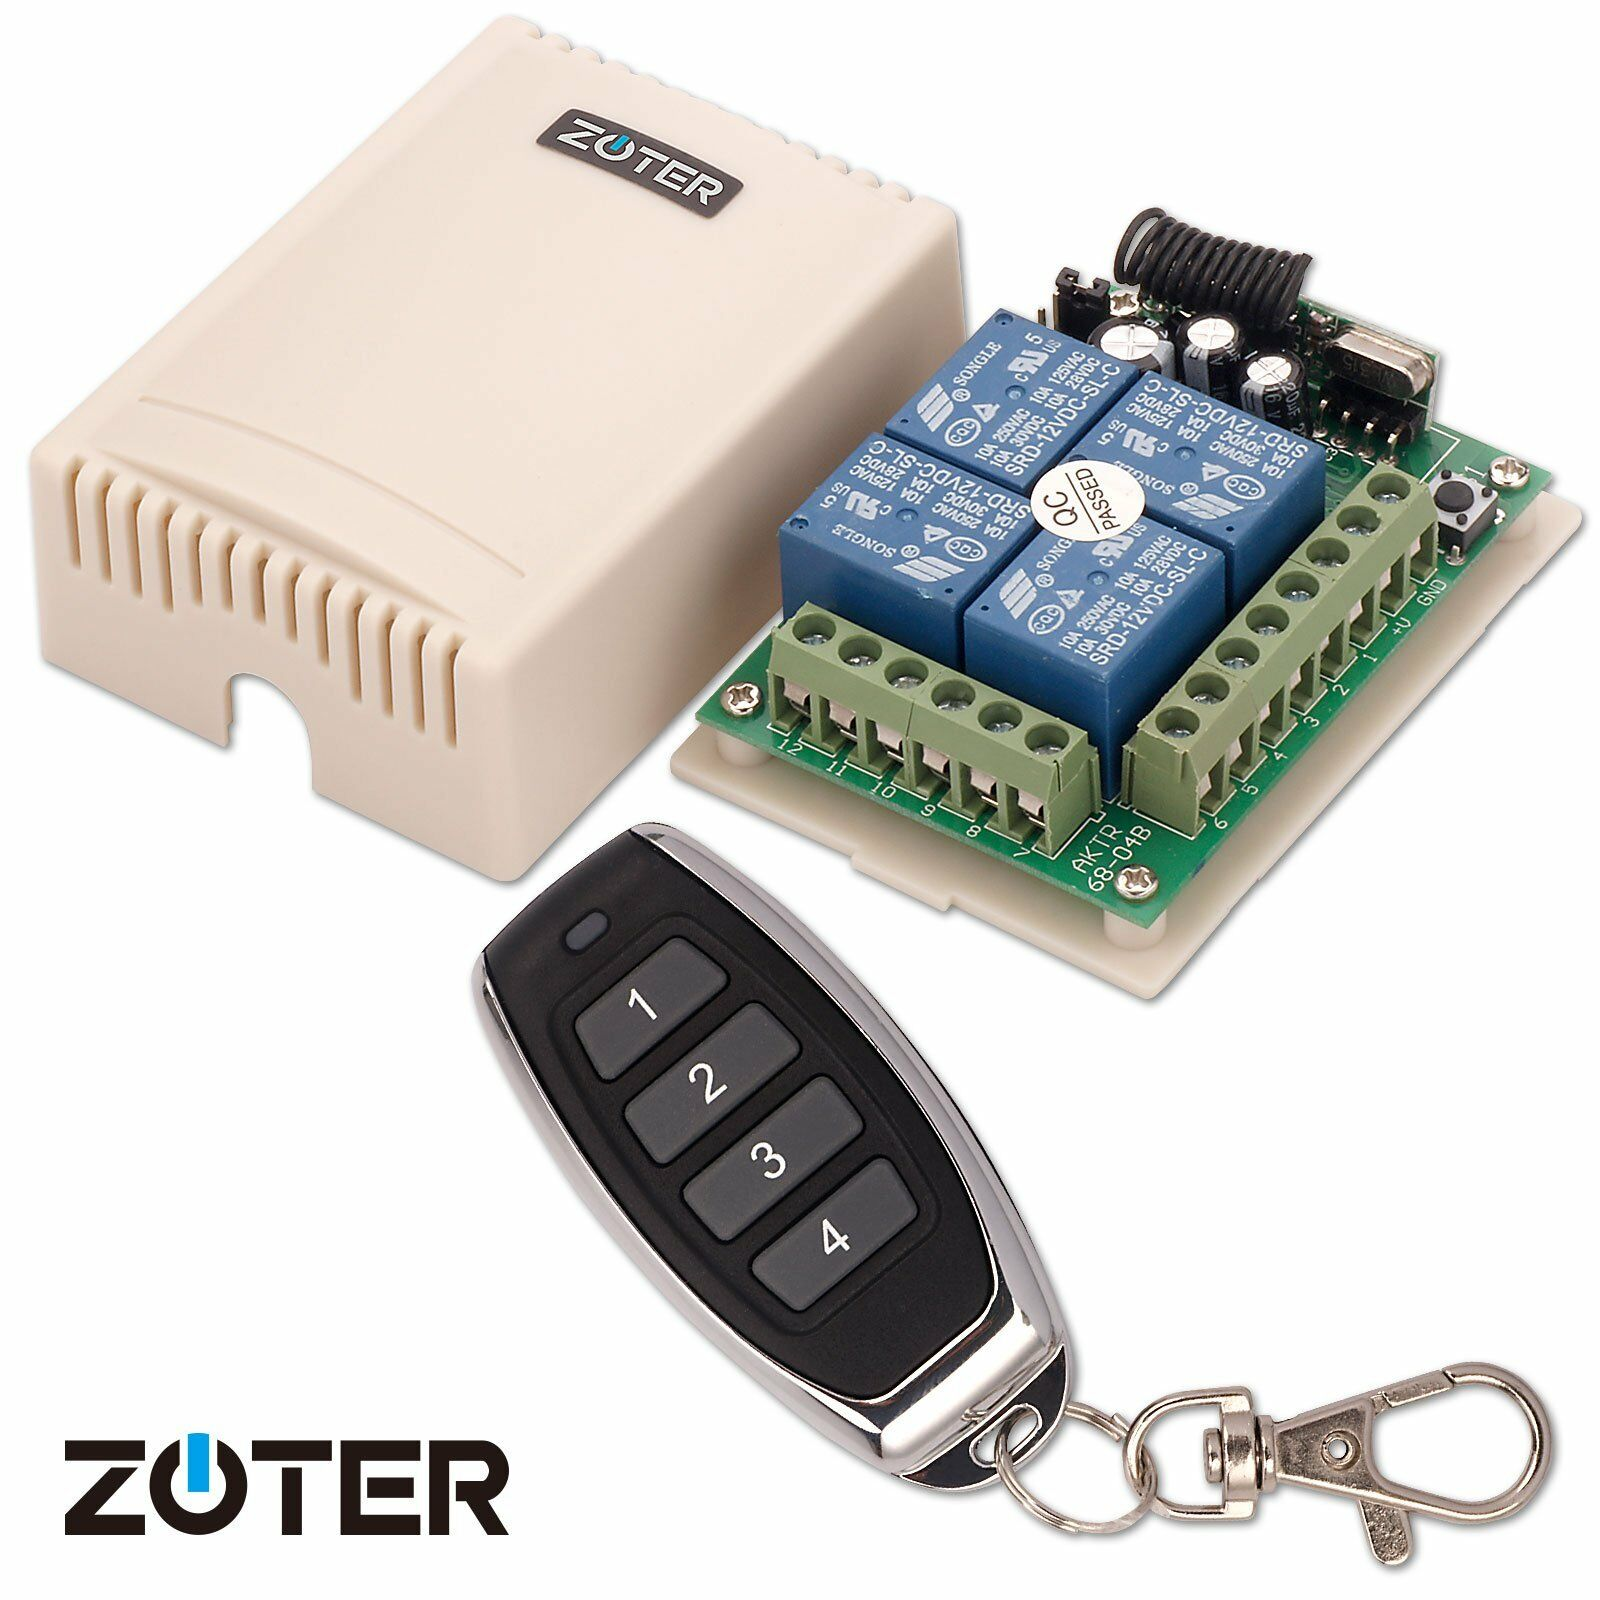 Zoter Universal Dc 12v 4 Channels 4ch Wireless 315mhz Remote Control